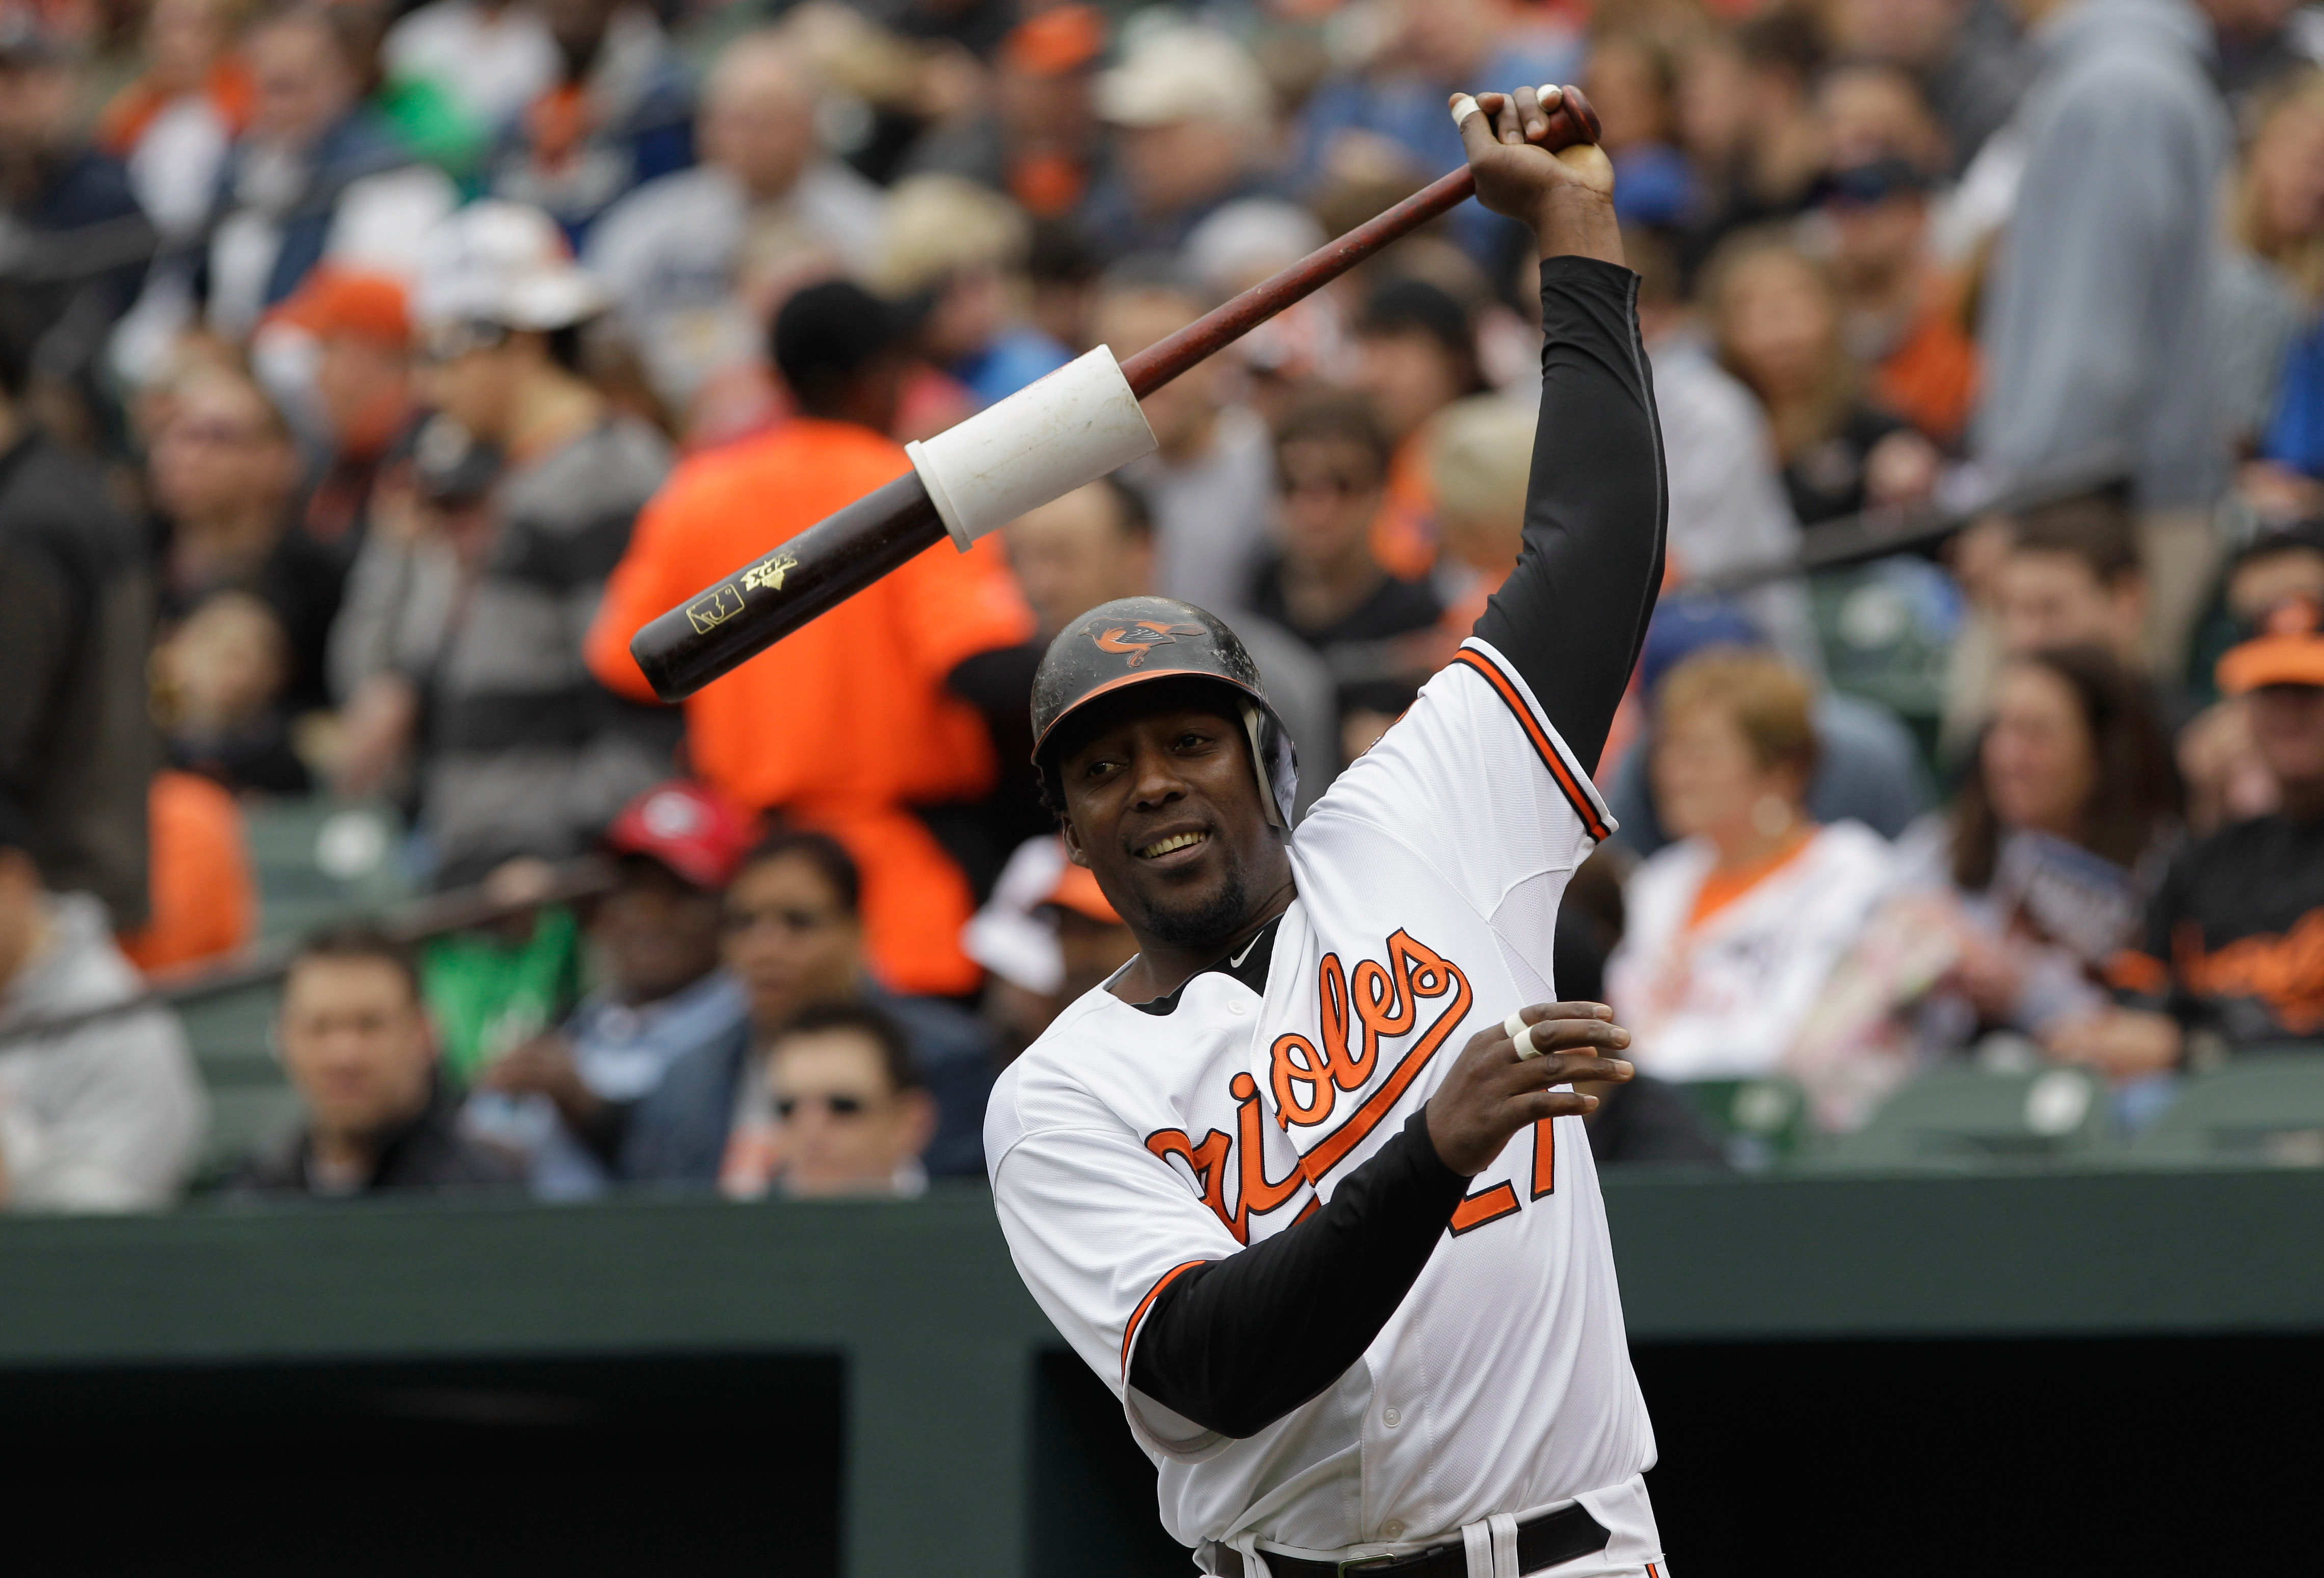 BALTIMORE, MD - APRIL 10:  Vladimir Guerrero #27 of the Baltimore Orioles in the on deck circle against the Texas Rangers at Oriole Park at Camden Yards on April 10, 2011 in Baltimore, Maryland.  (Photo by Rob Carr/Getty Images)